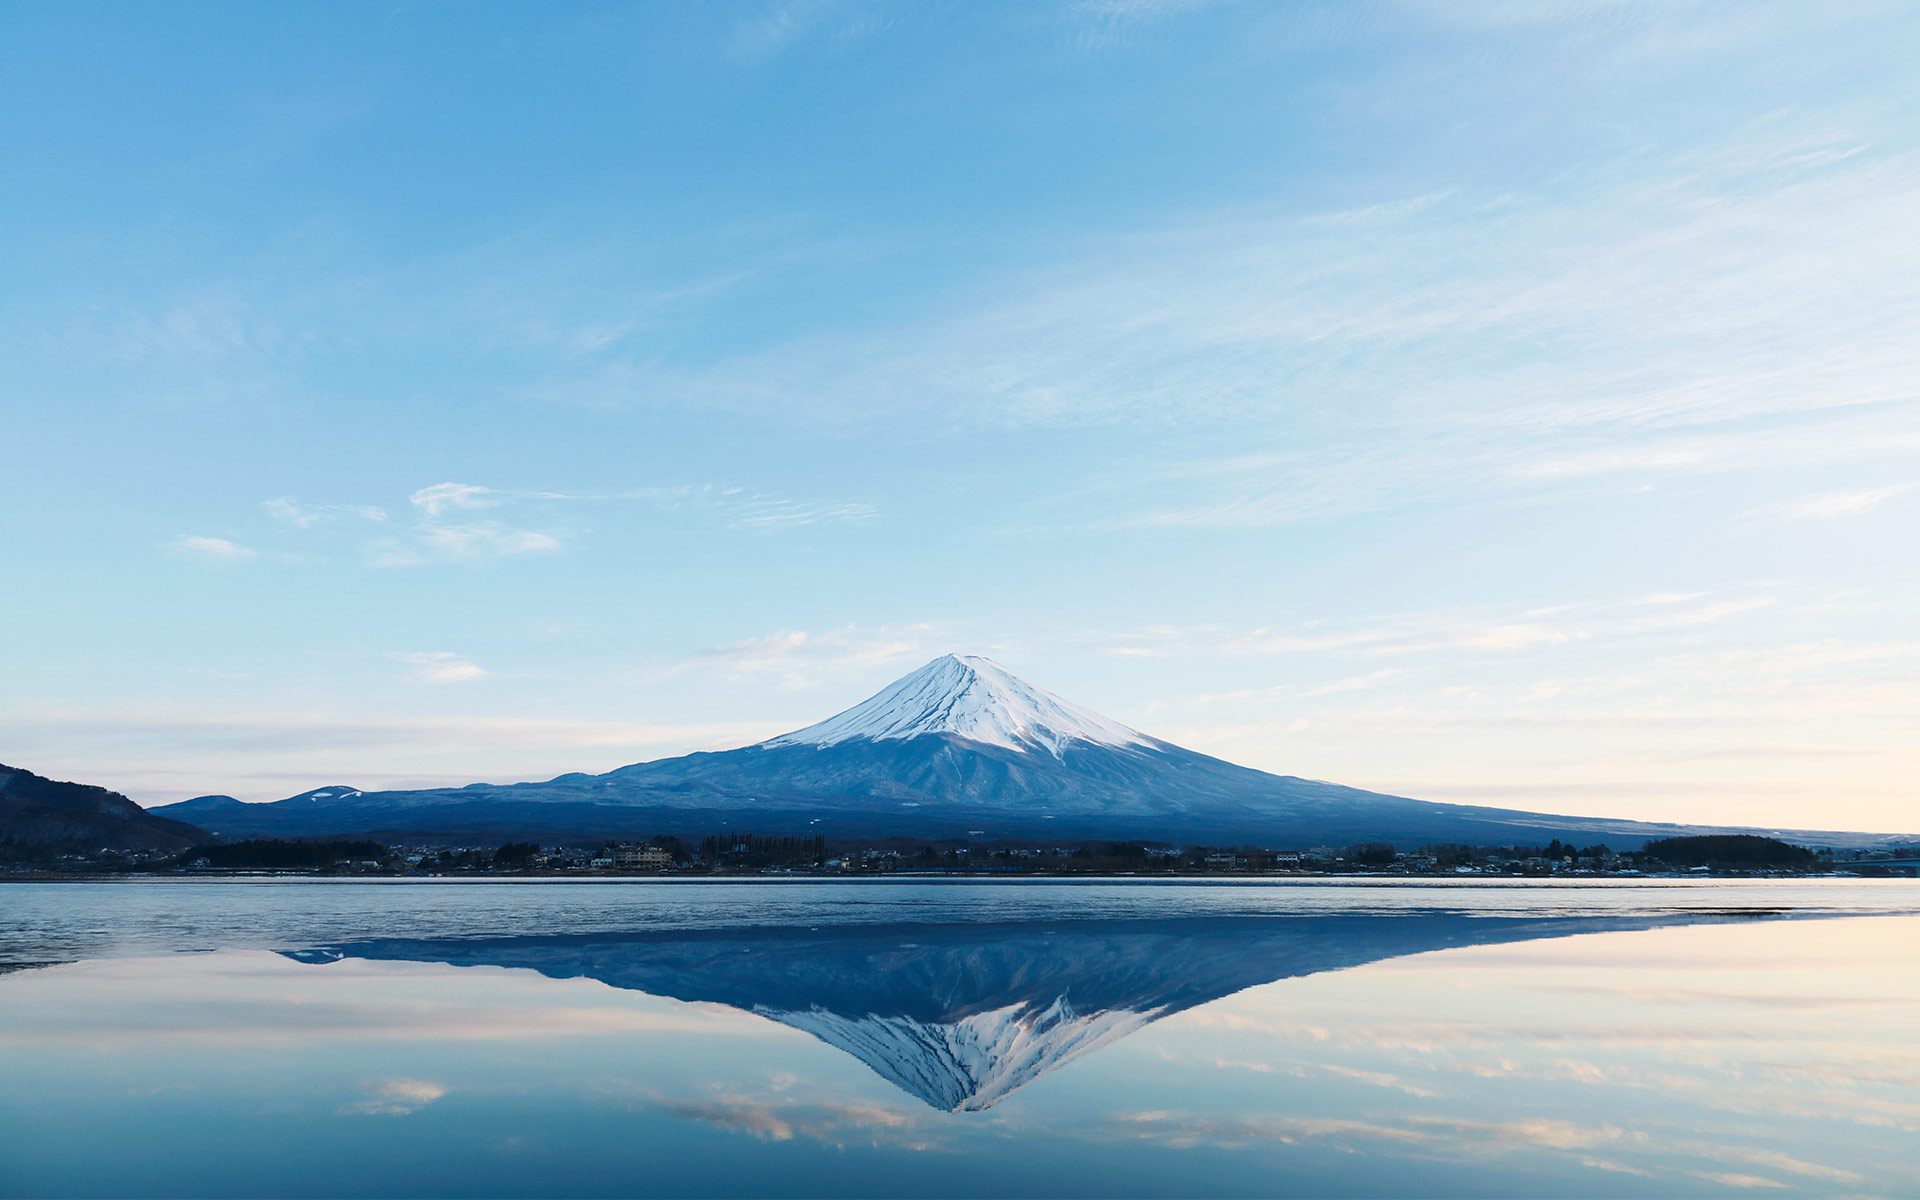 Great achievements come from Fujiyama in Japan